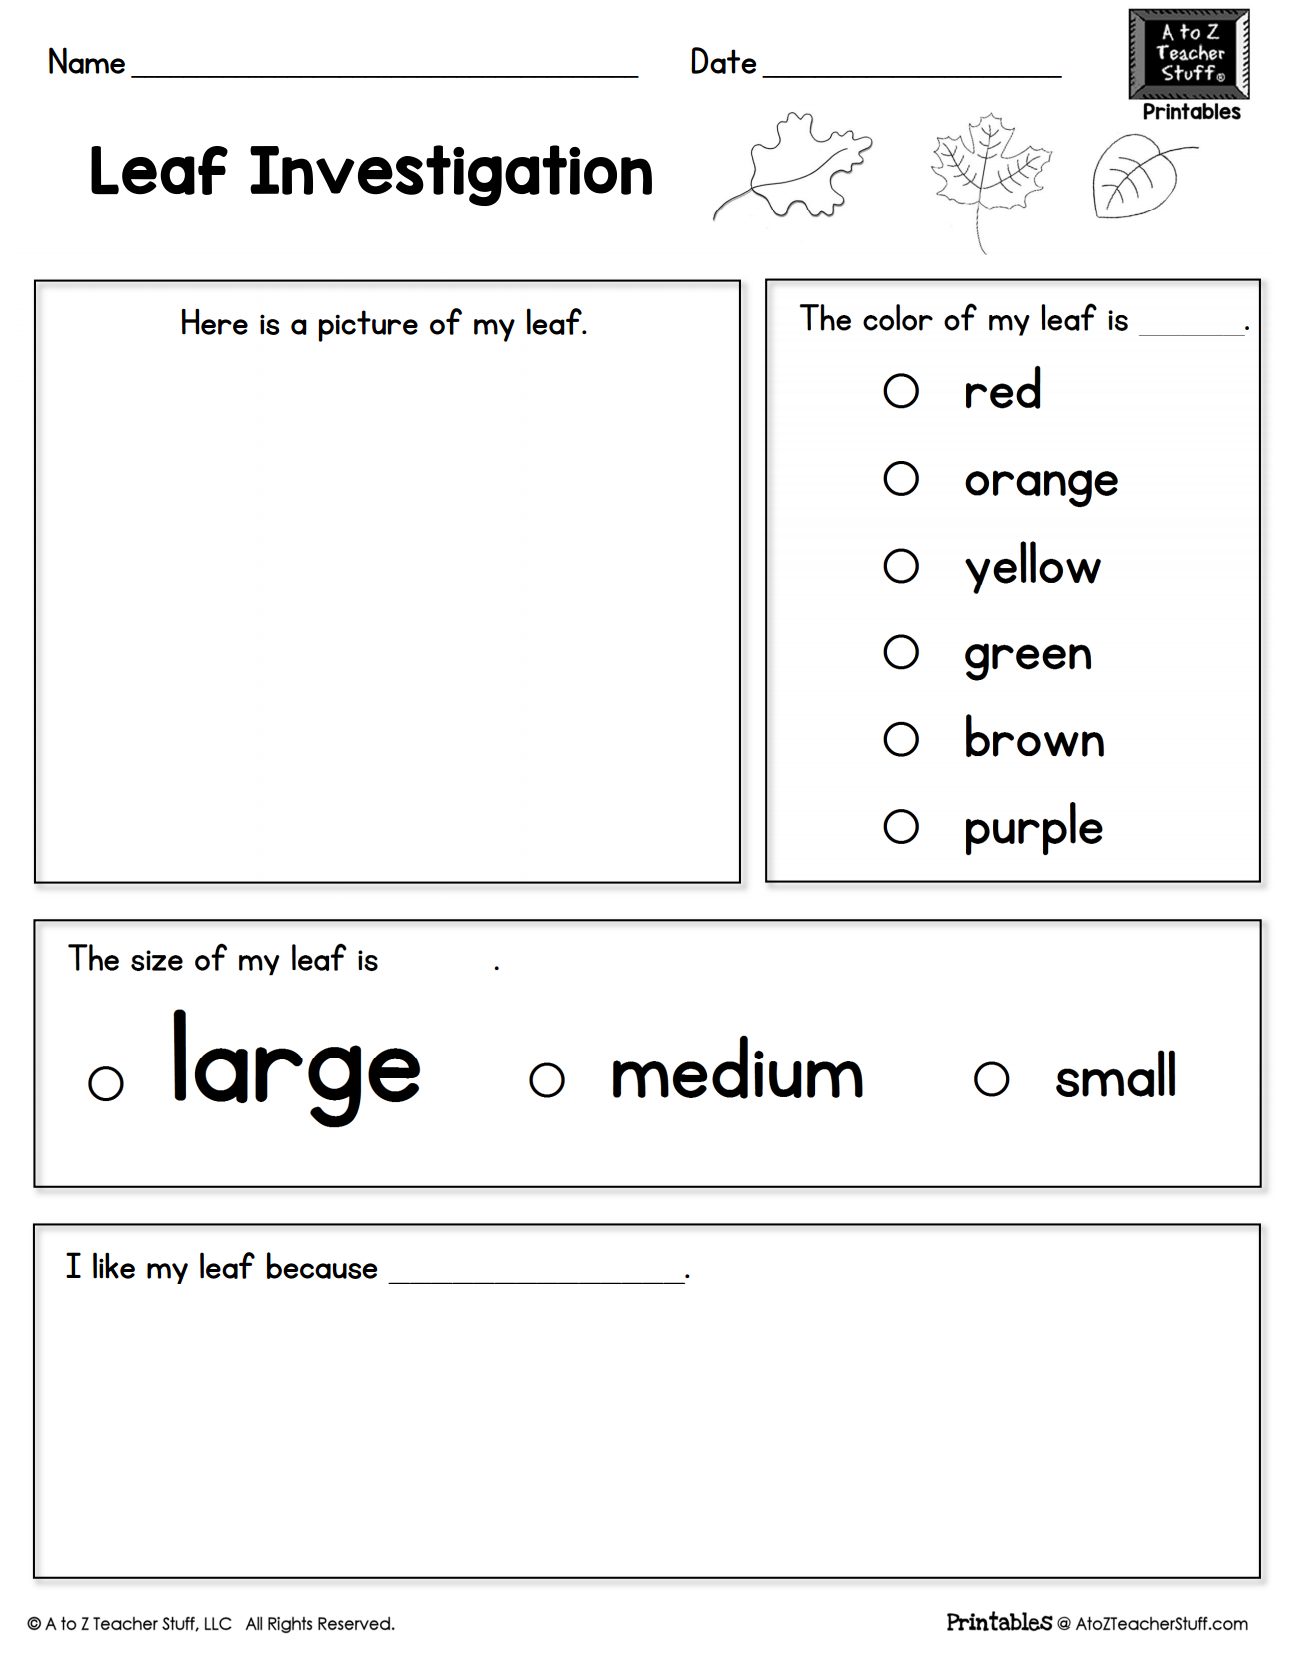 Area and Perimeter Worksheets & Printables | A to Z Teacher Stuff ...